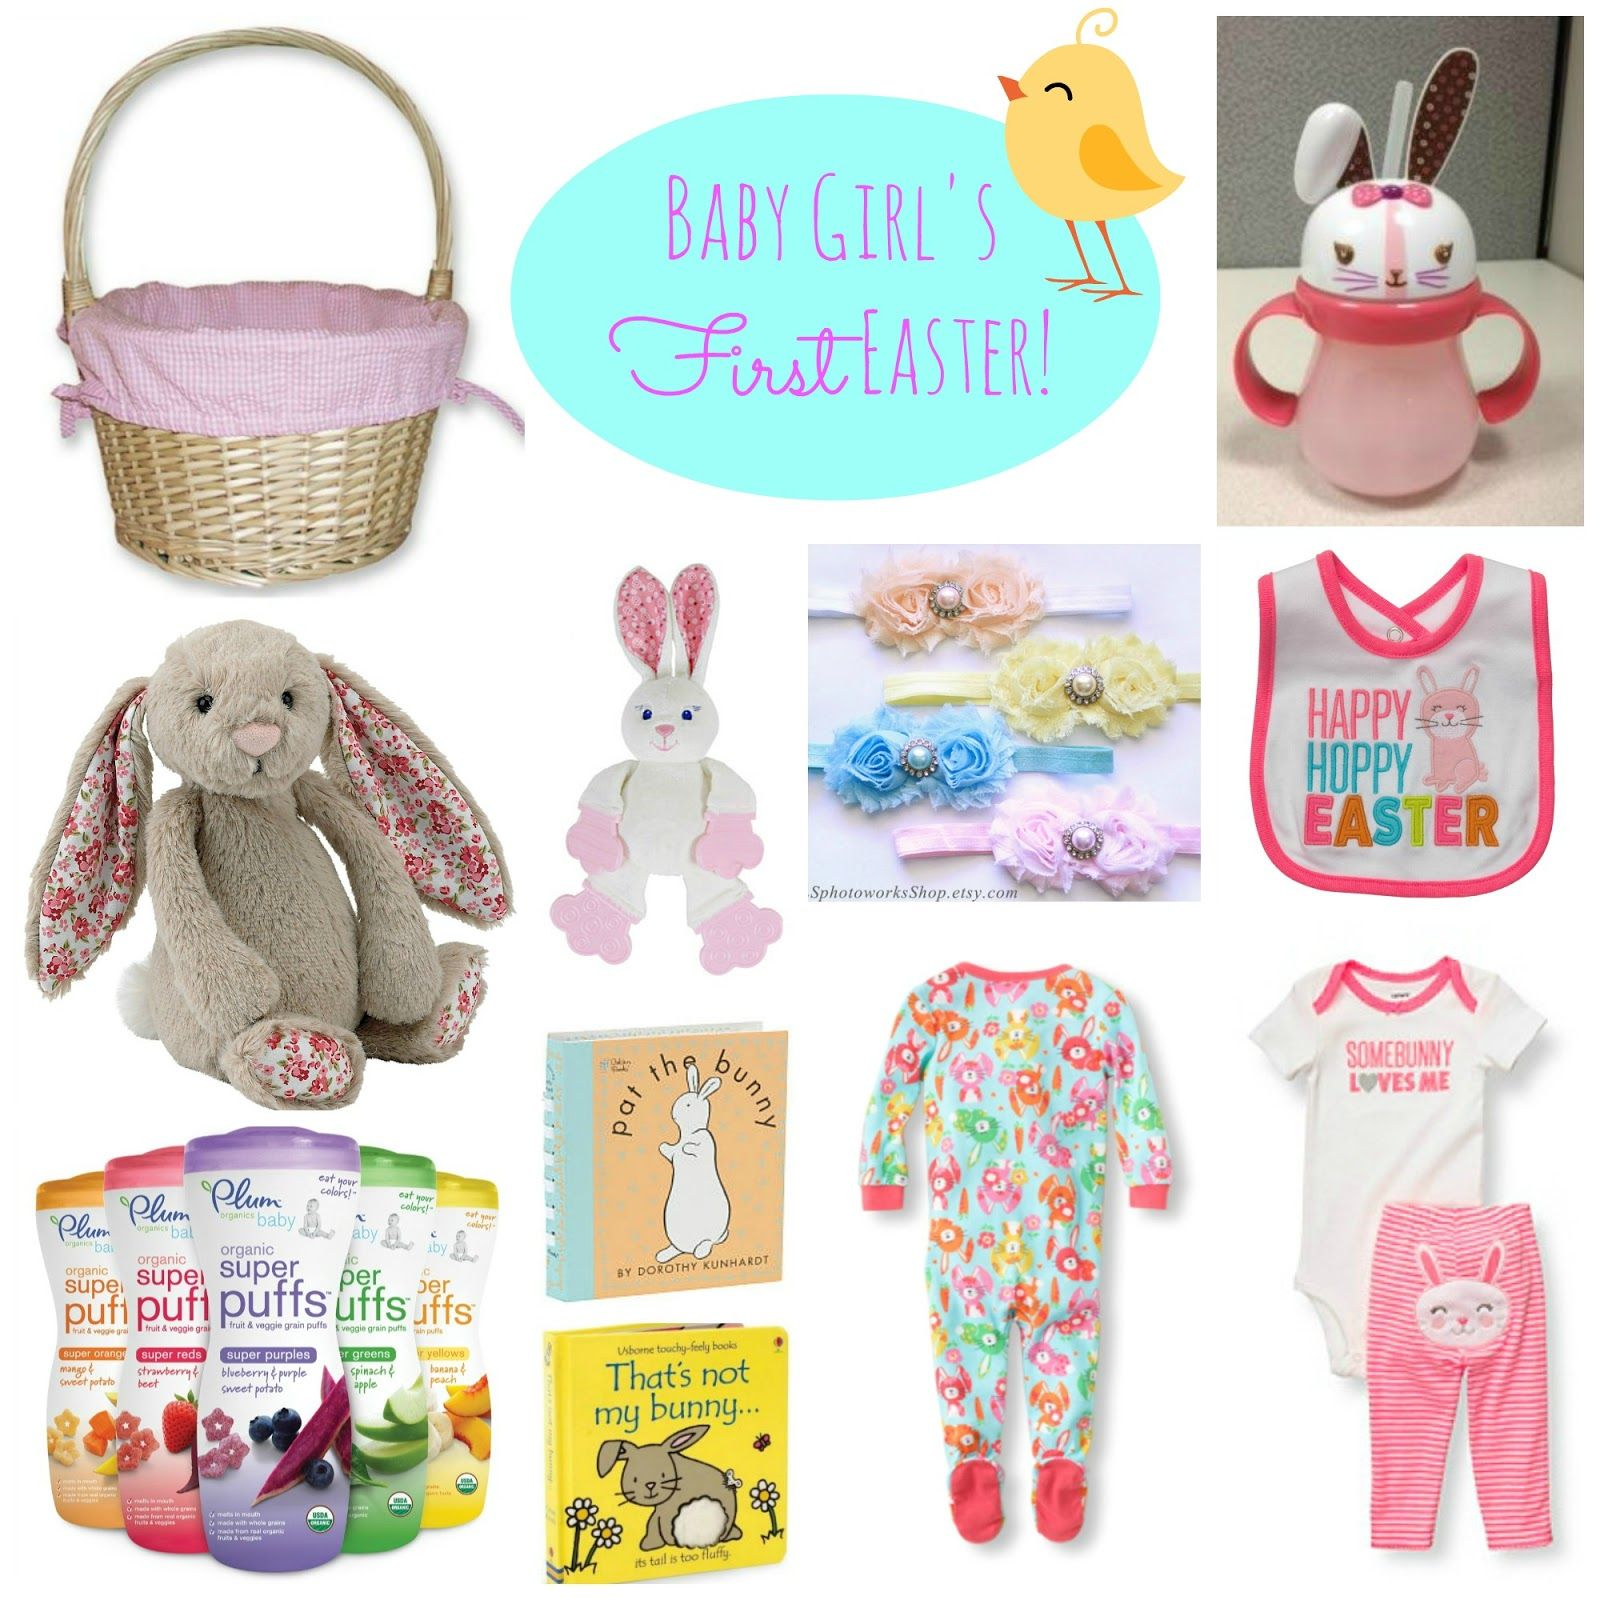 Baby girls first easter basket ideas with links for purchasing baby girls first easter basket ideas with links for purchasing negle Images